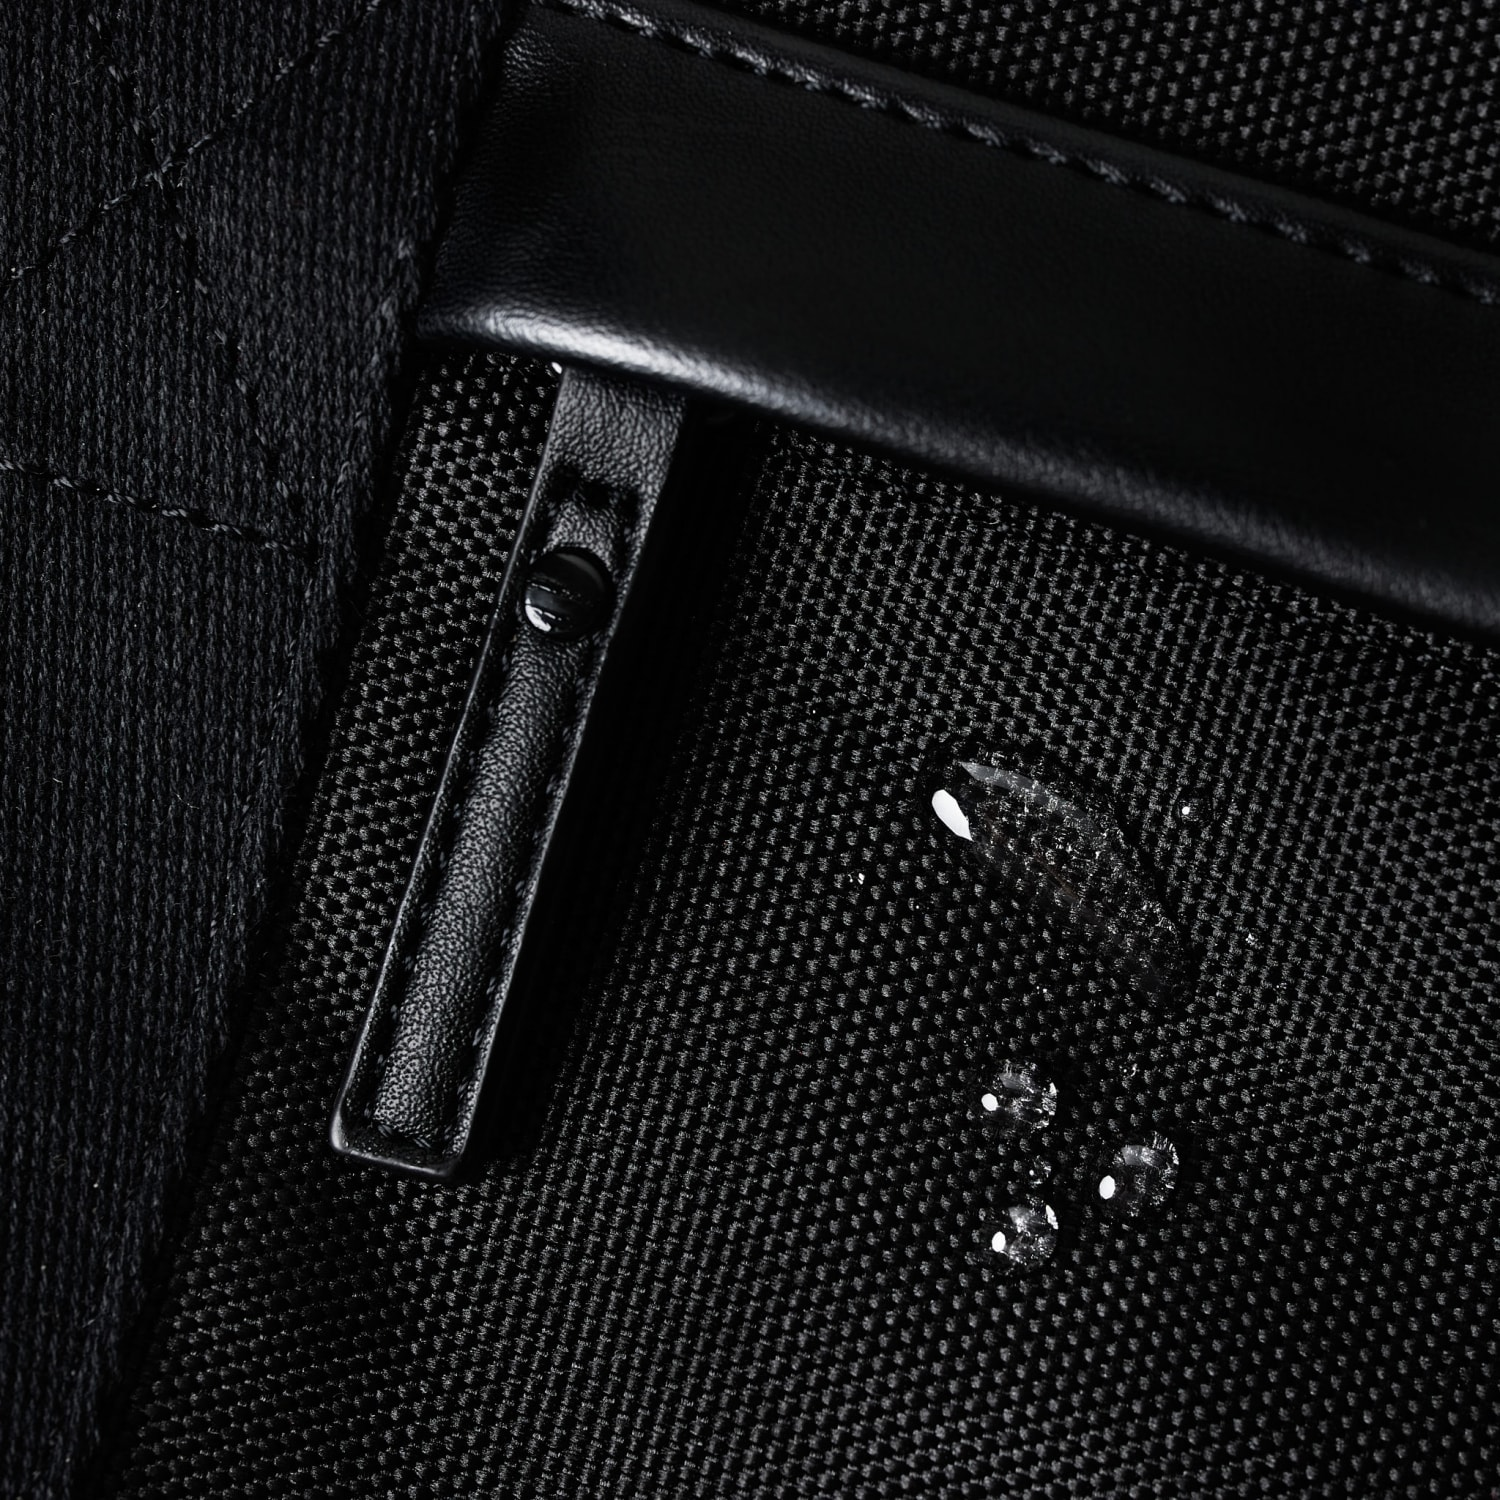 water resistant materials used for the weekend bag